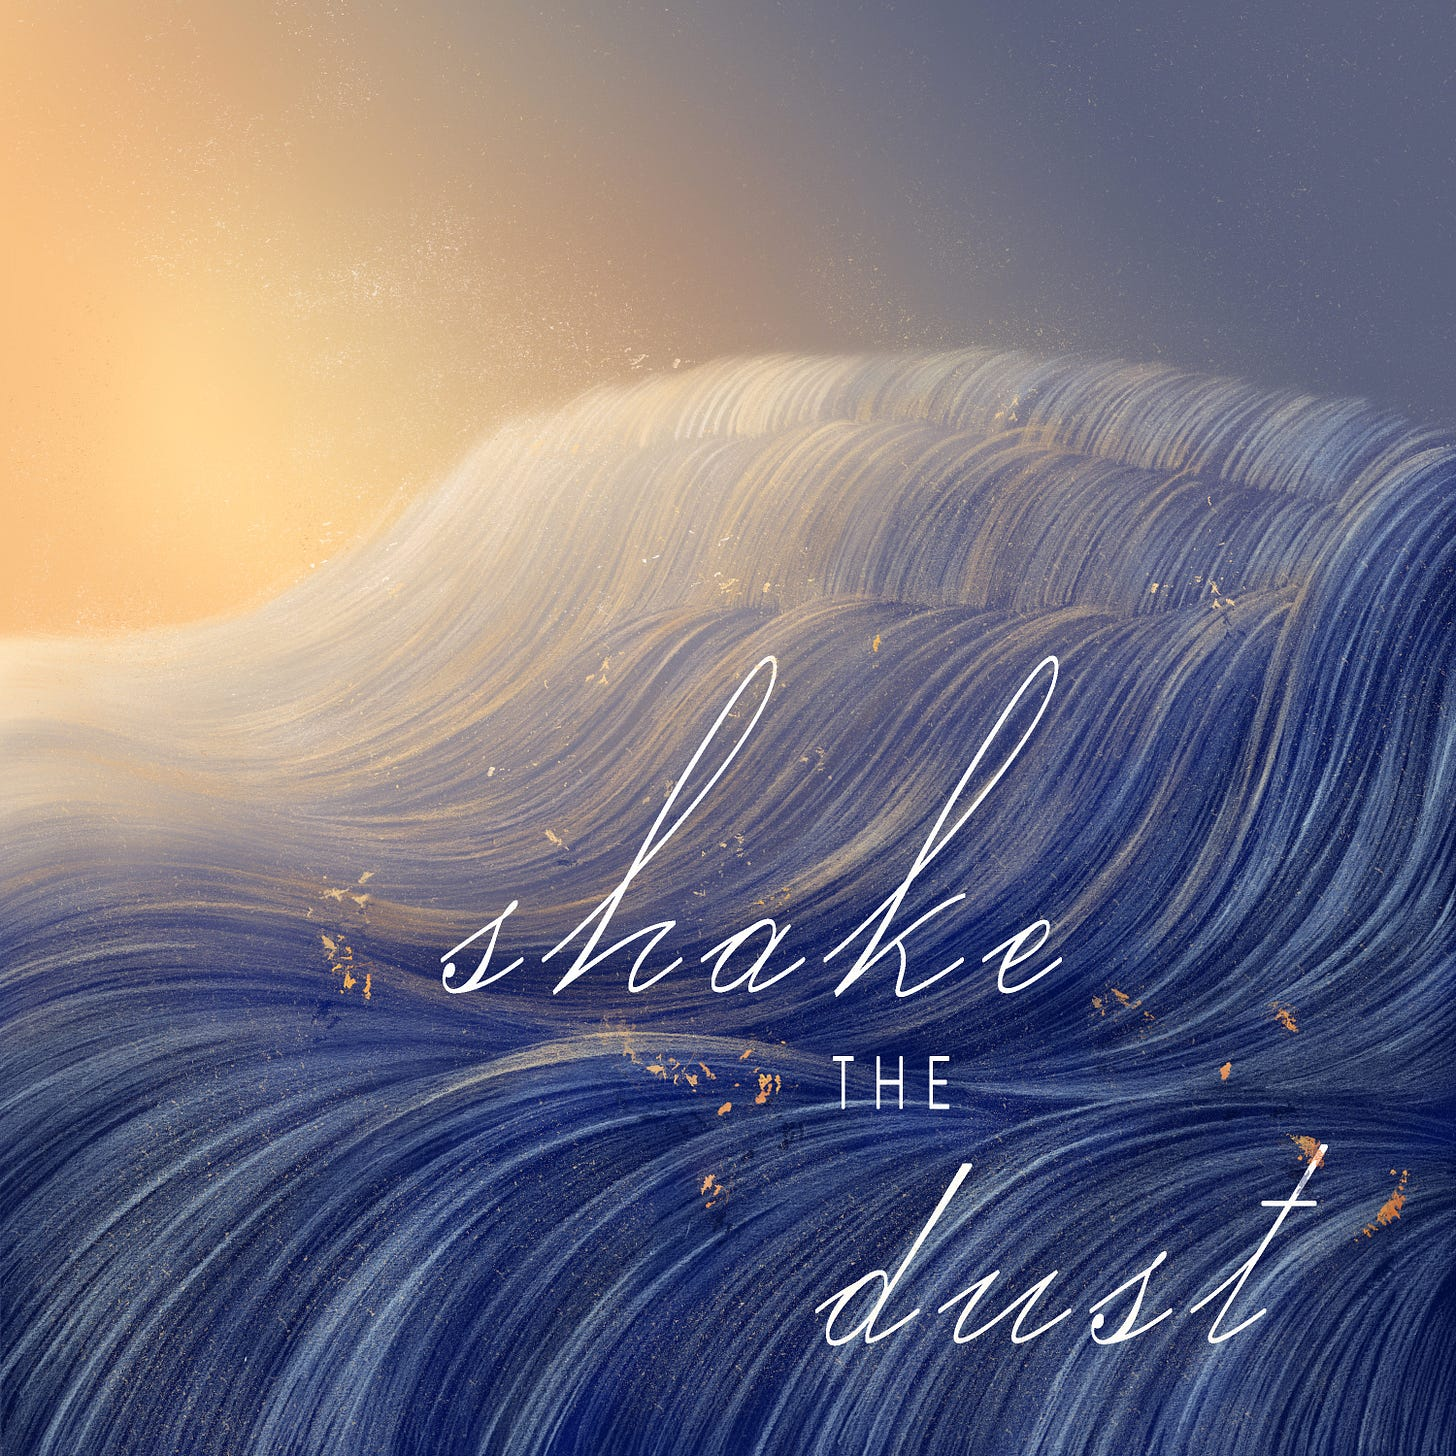 """A square image. It is a somewhat abstract Illustration in warm, bright colors of a blue and white landscape with flecks of orange. The landscape itself is undulating in about 4 waves descending from the top right to bottom left corners of the image. The sun is partially visible on the top left and the sky is blue. White, cursive lettering spells out """"Shake the Dust"""" across the ground."""